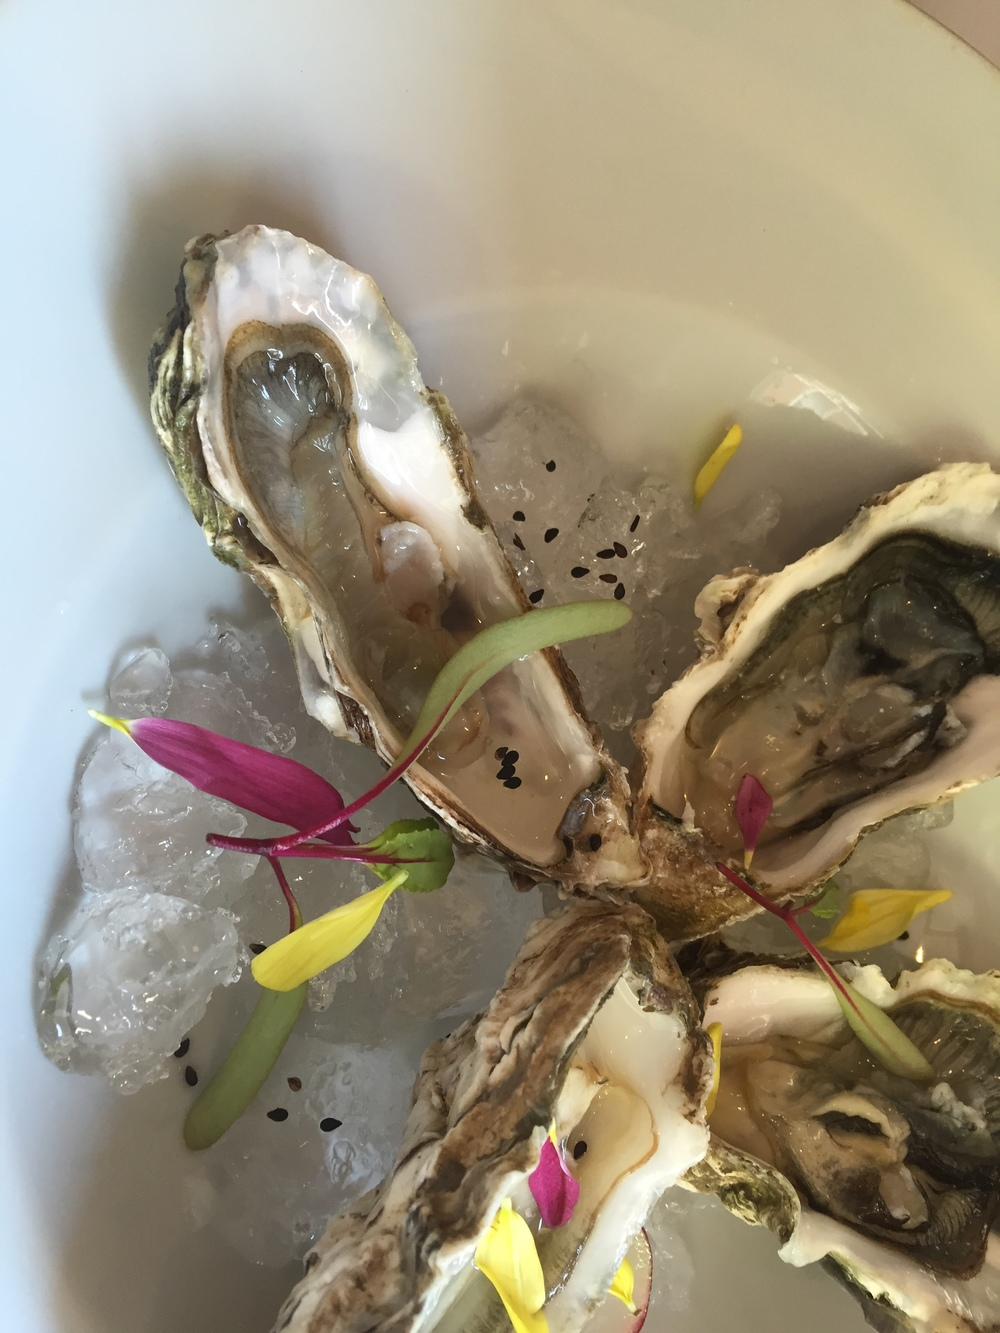 A particularly elegant presentation of Patagonian oysters at the excellent Roux in Recoleta